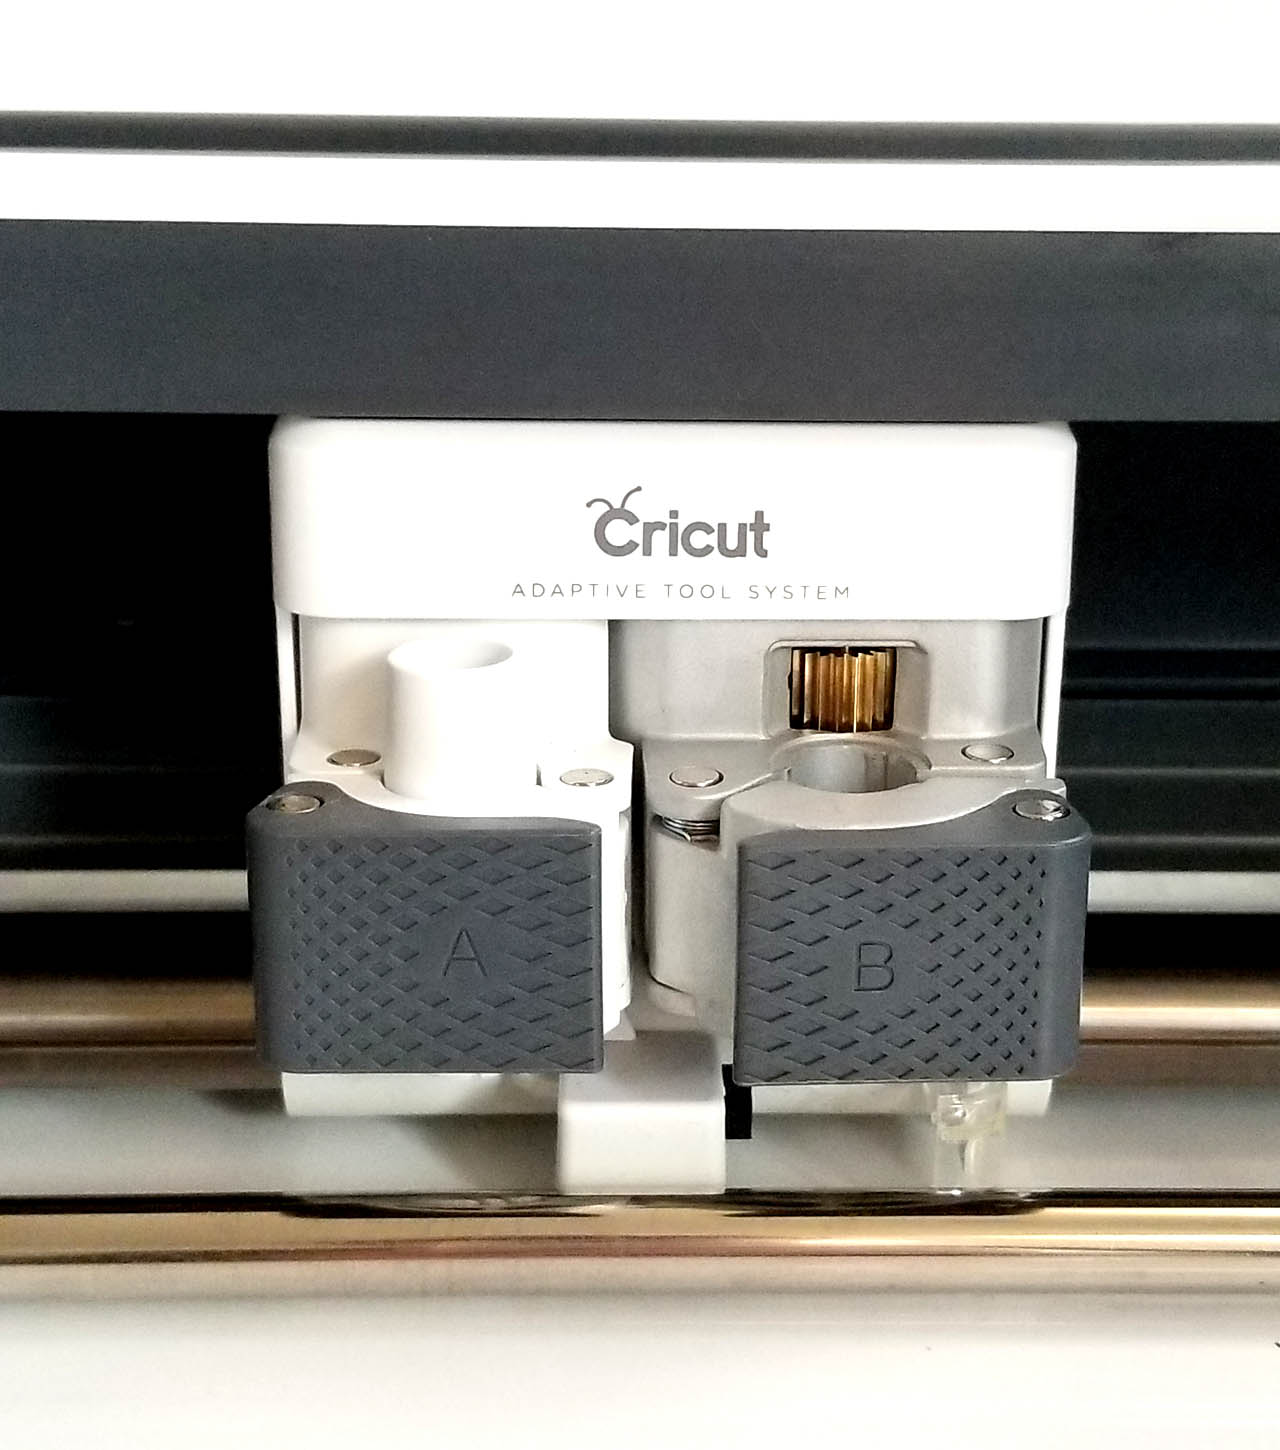 Cricut clamp A and clamp B